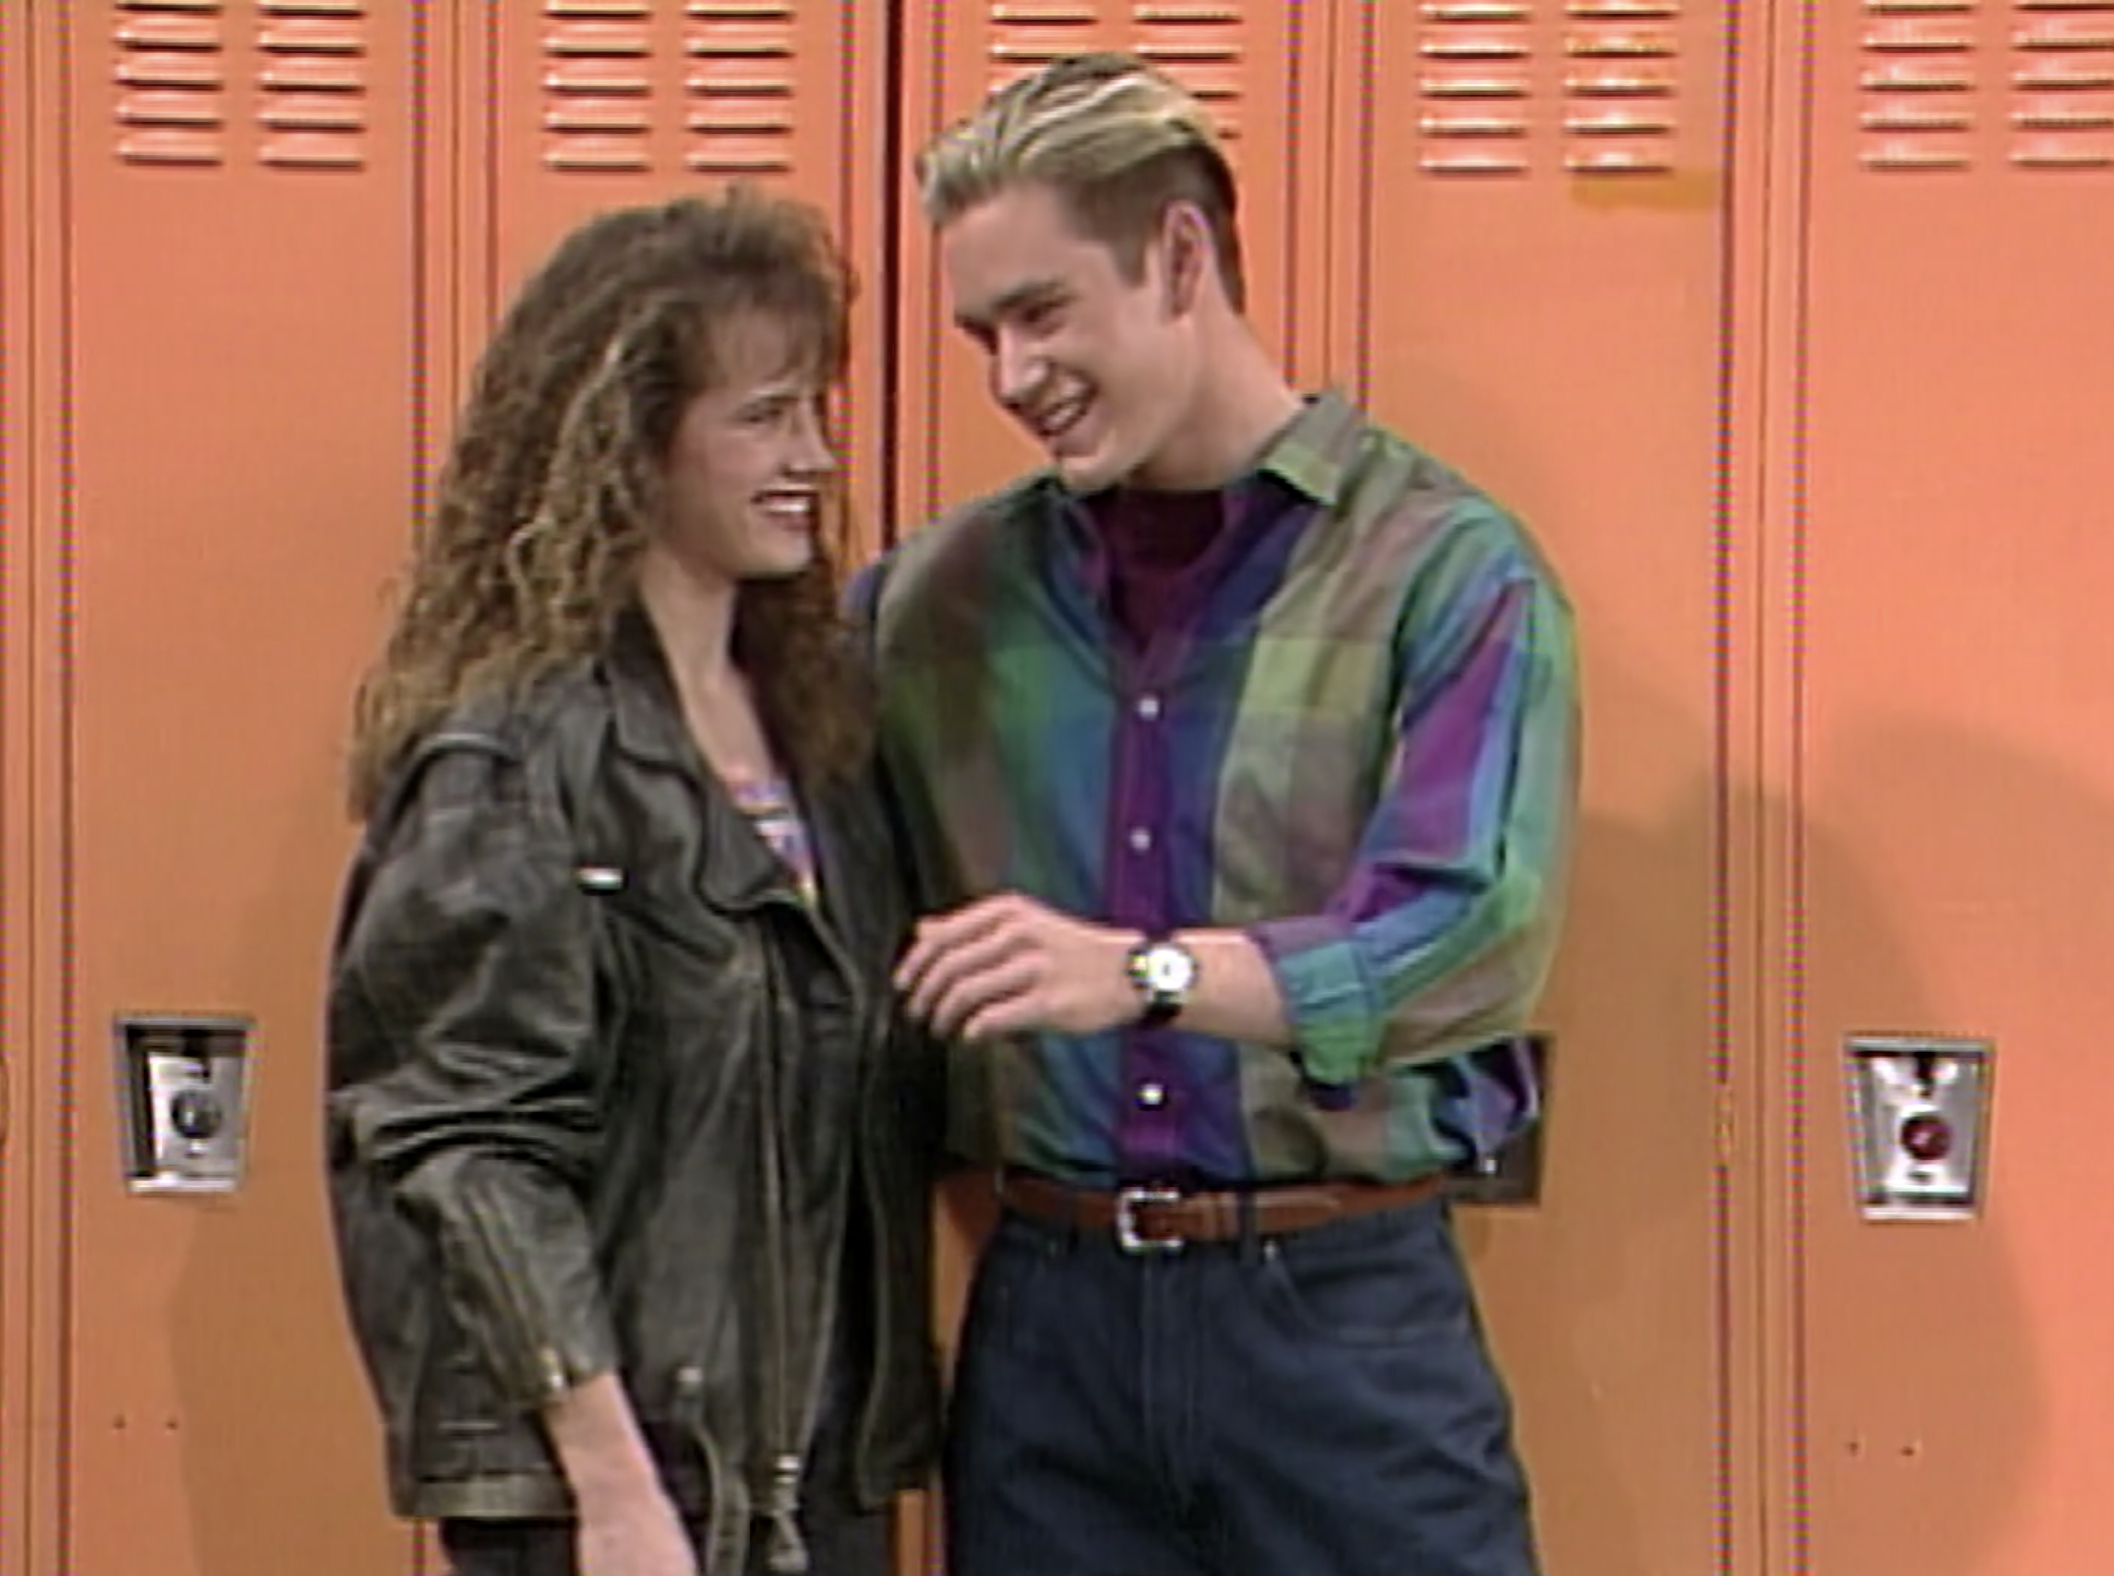 Zack and Tori hanging by the lockers